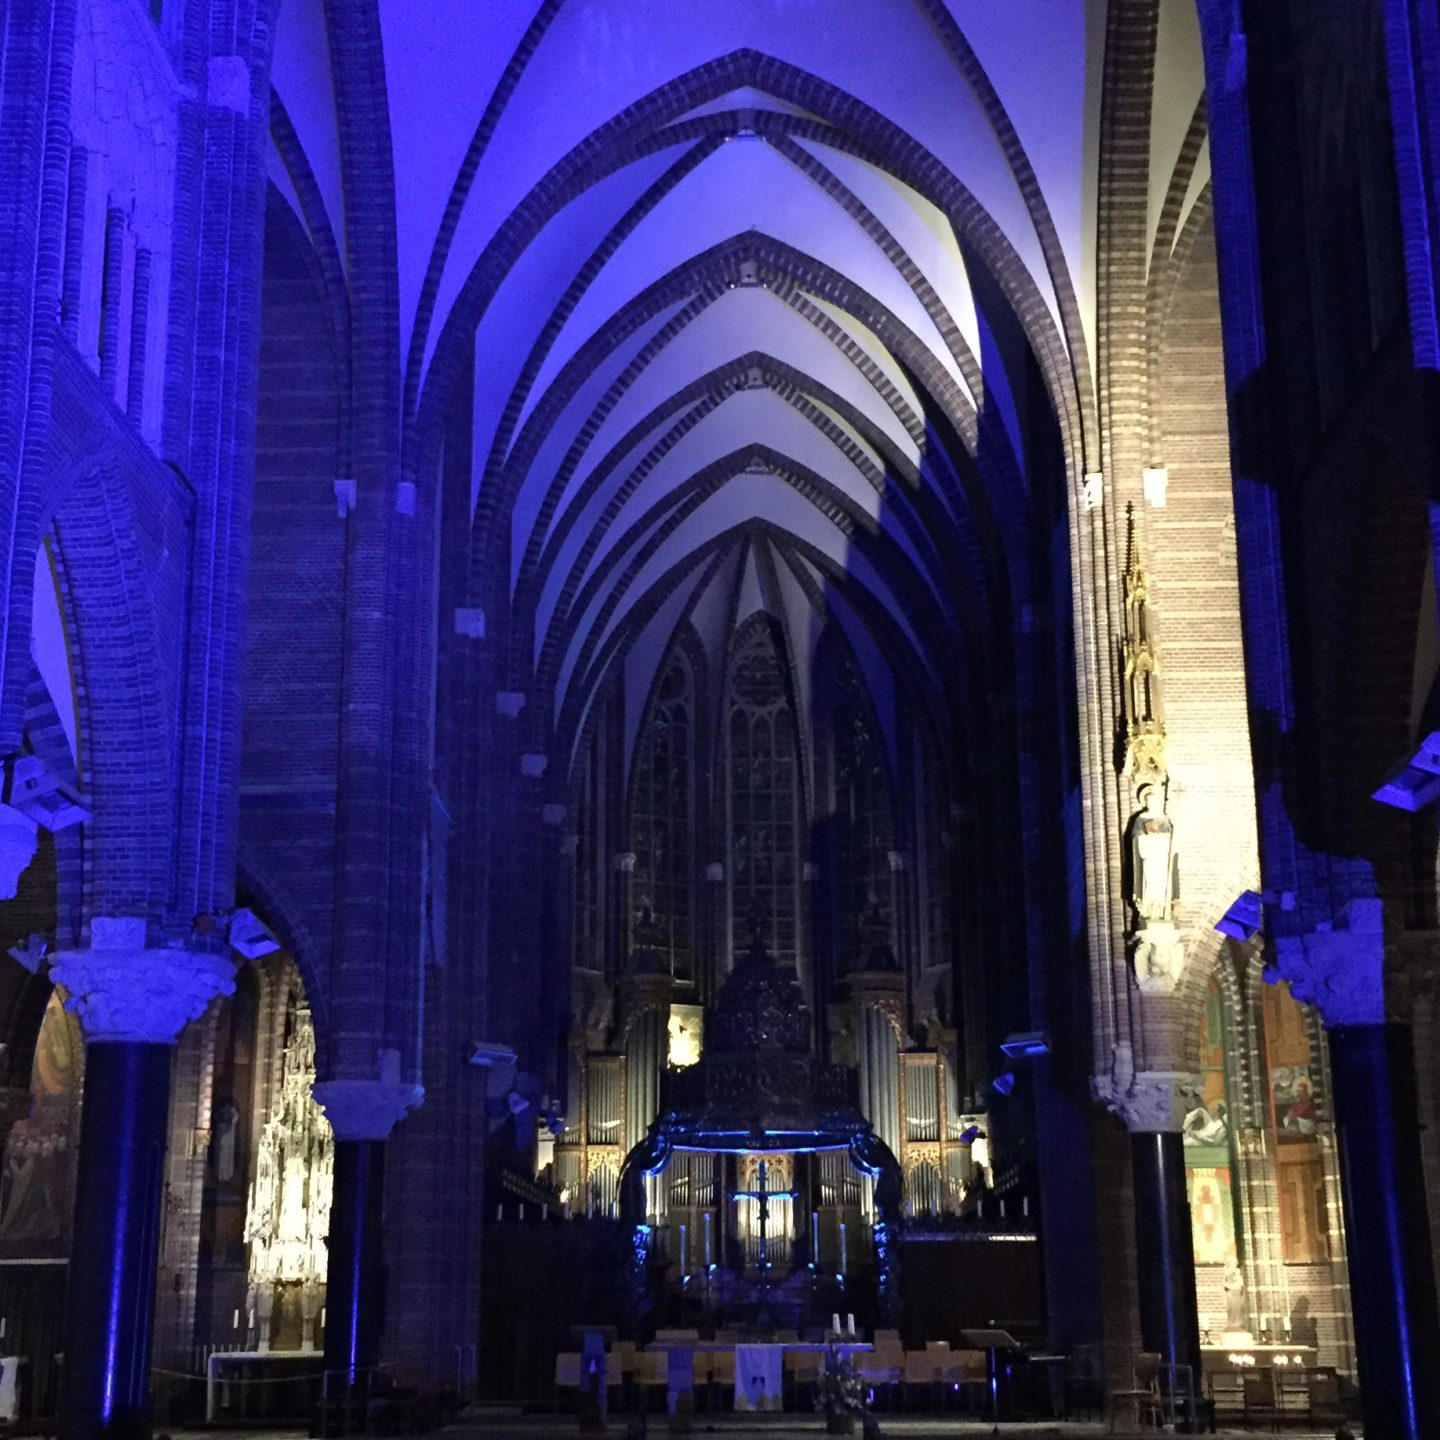 'Blue Monday' in Dominicanenklooster Zwolle